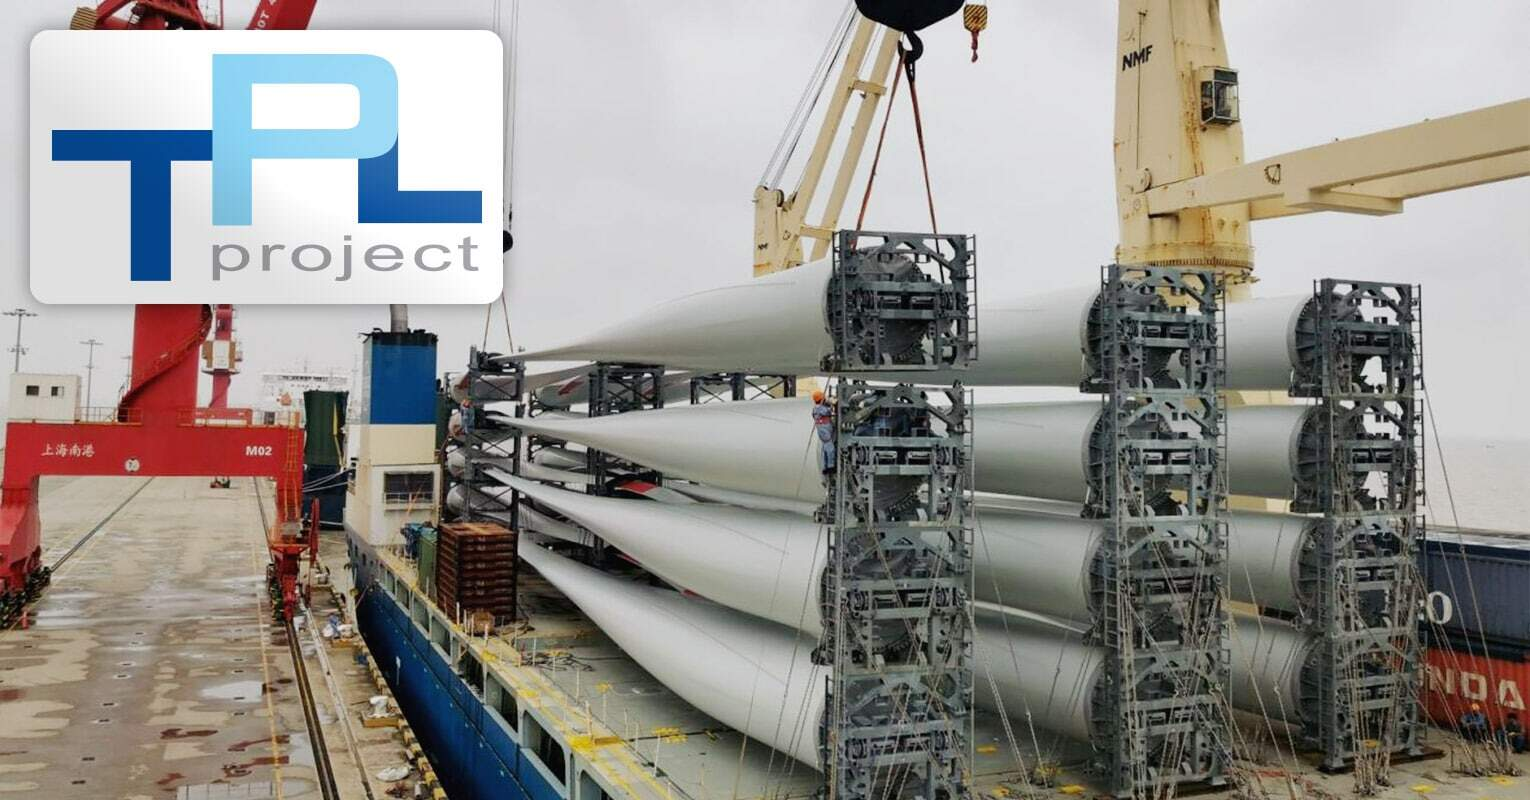 TPL Project Loaded 24 pcs of B6310 Wint Turbine Blades in Shanghai for Denmark with Terms FAS